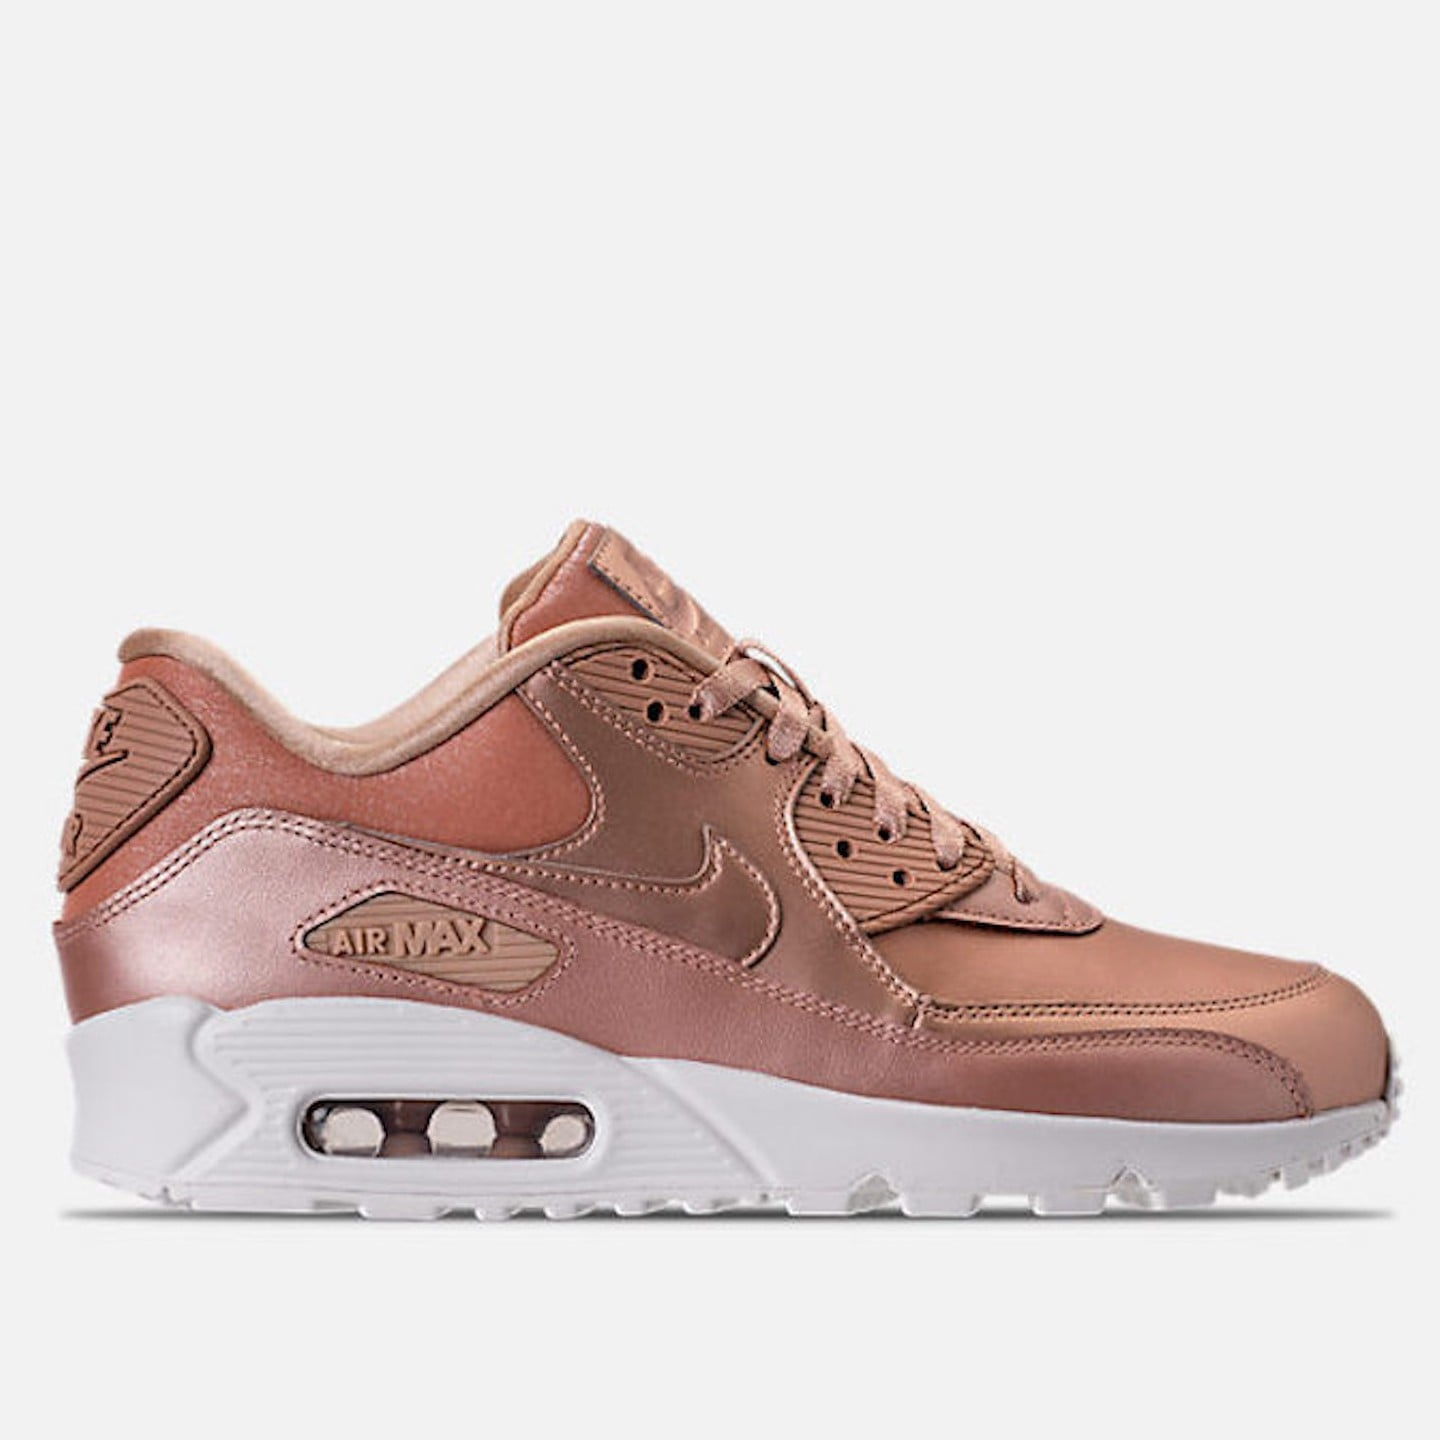 coolest sneakers 2018